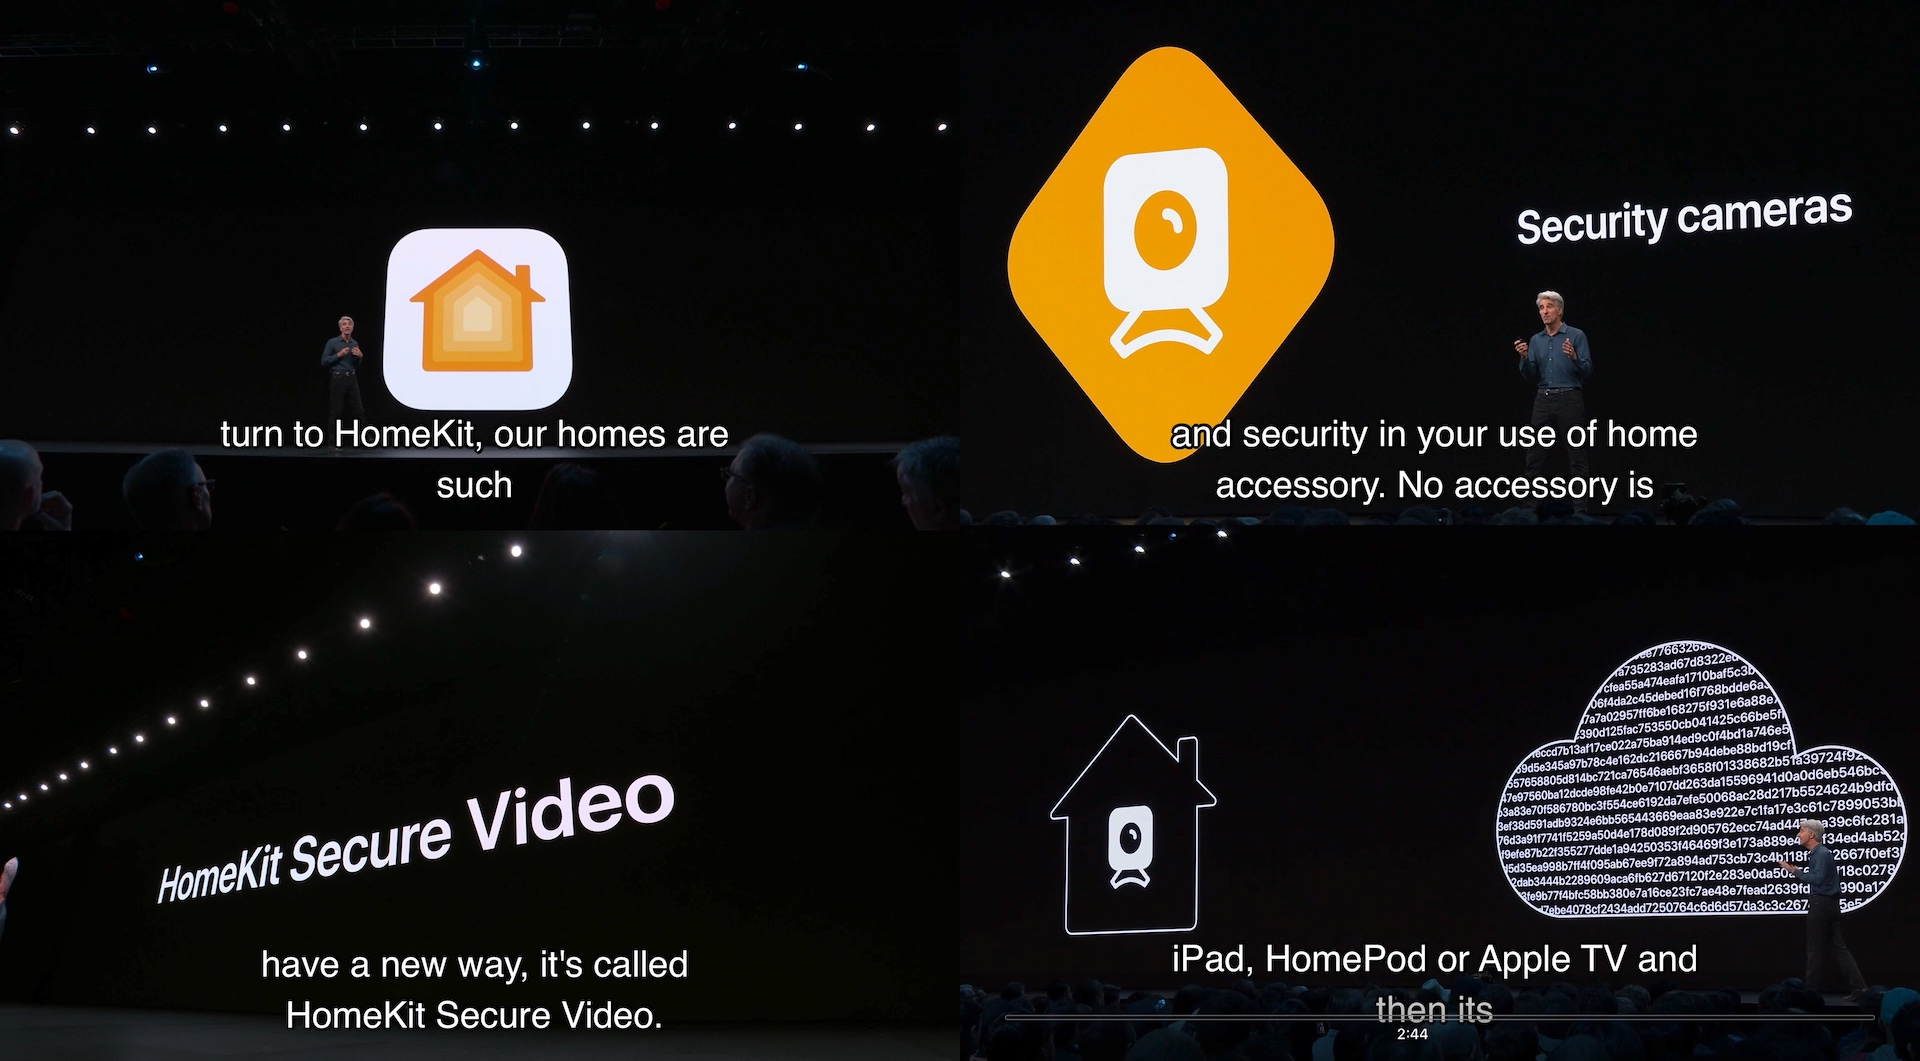 HomeKit Security Video